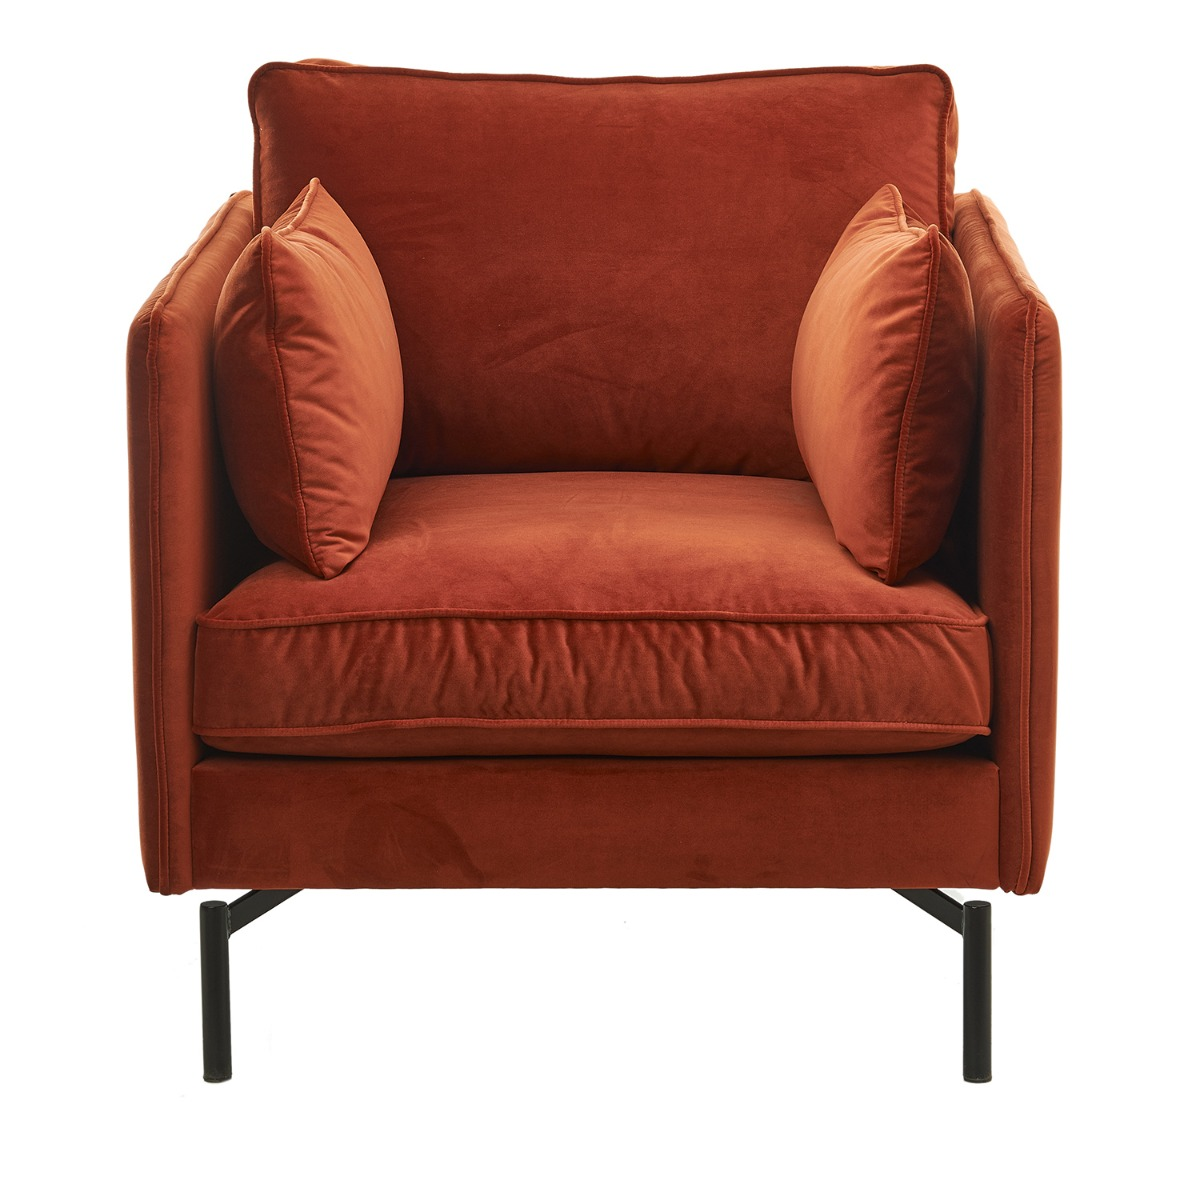 PPno.2 fauteuil Pols Potten roest rood